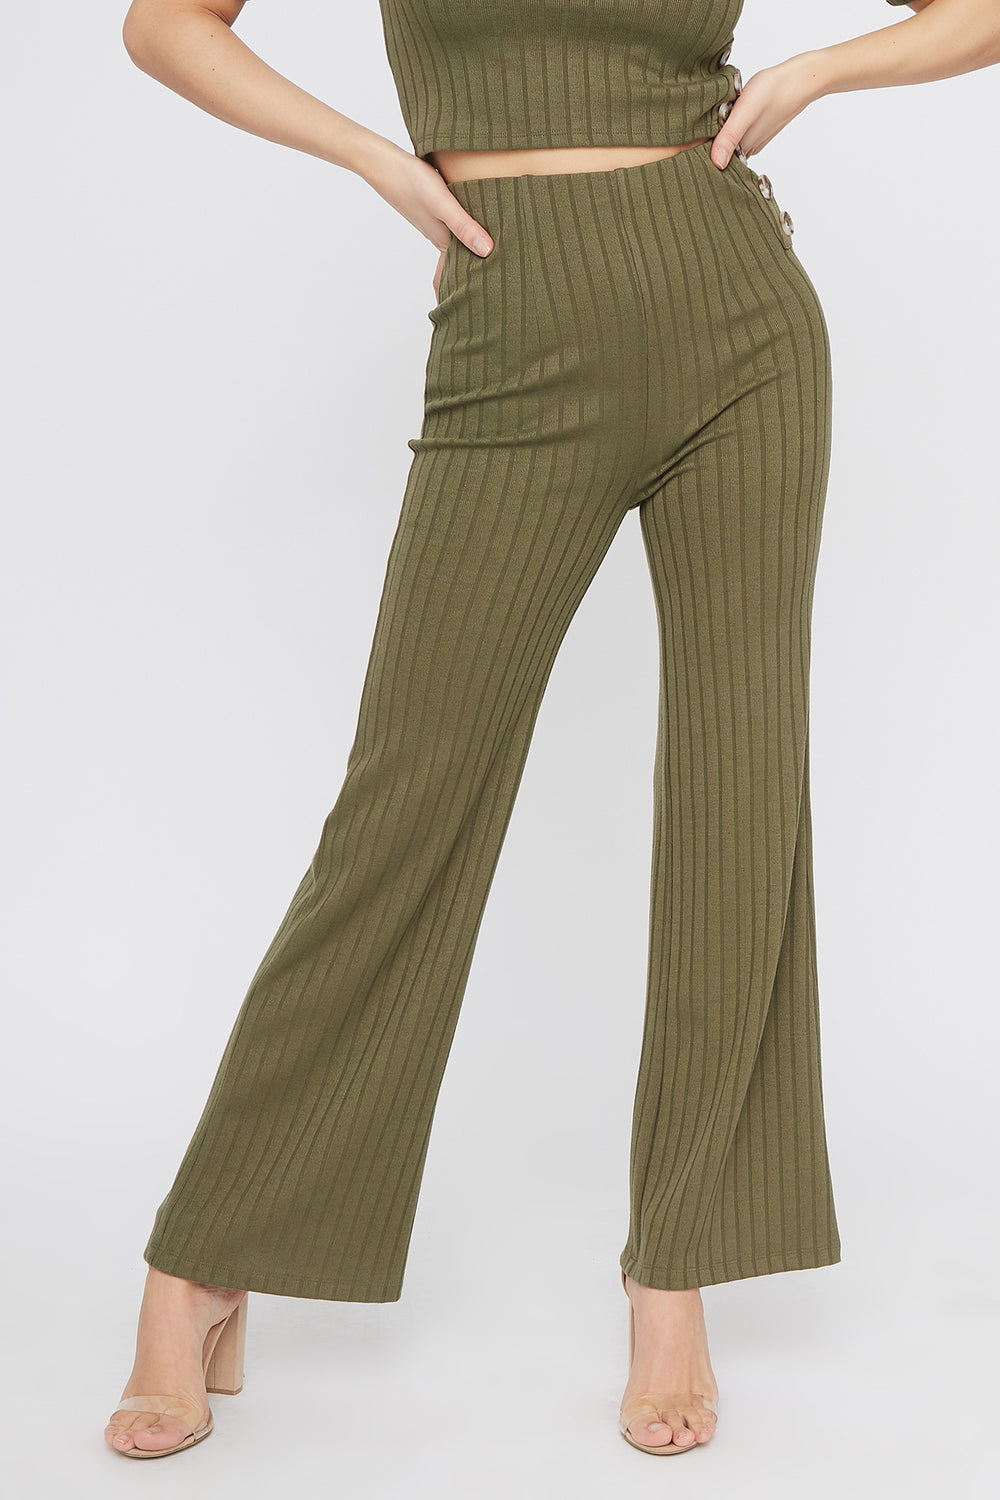 Ribbed High-Rise Flare Pant Dark Green